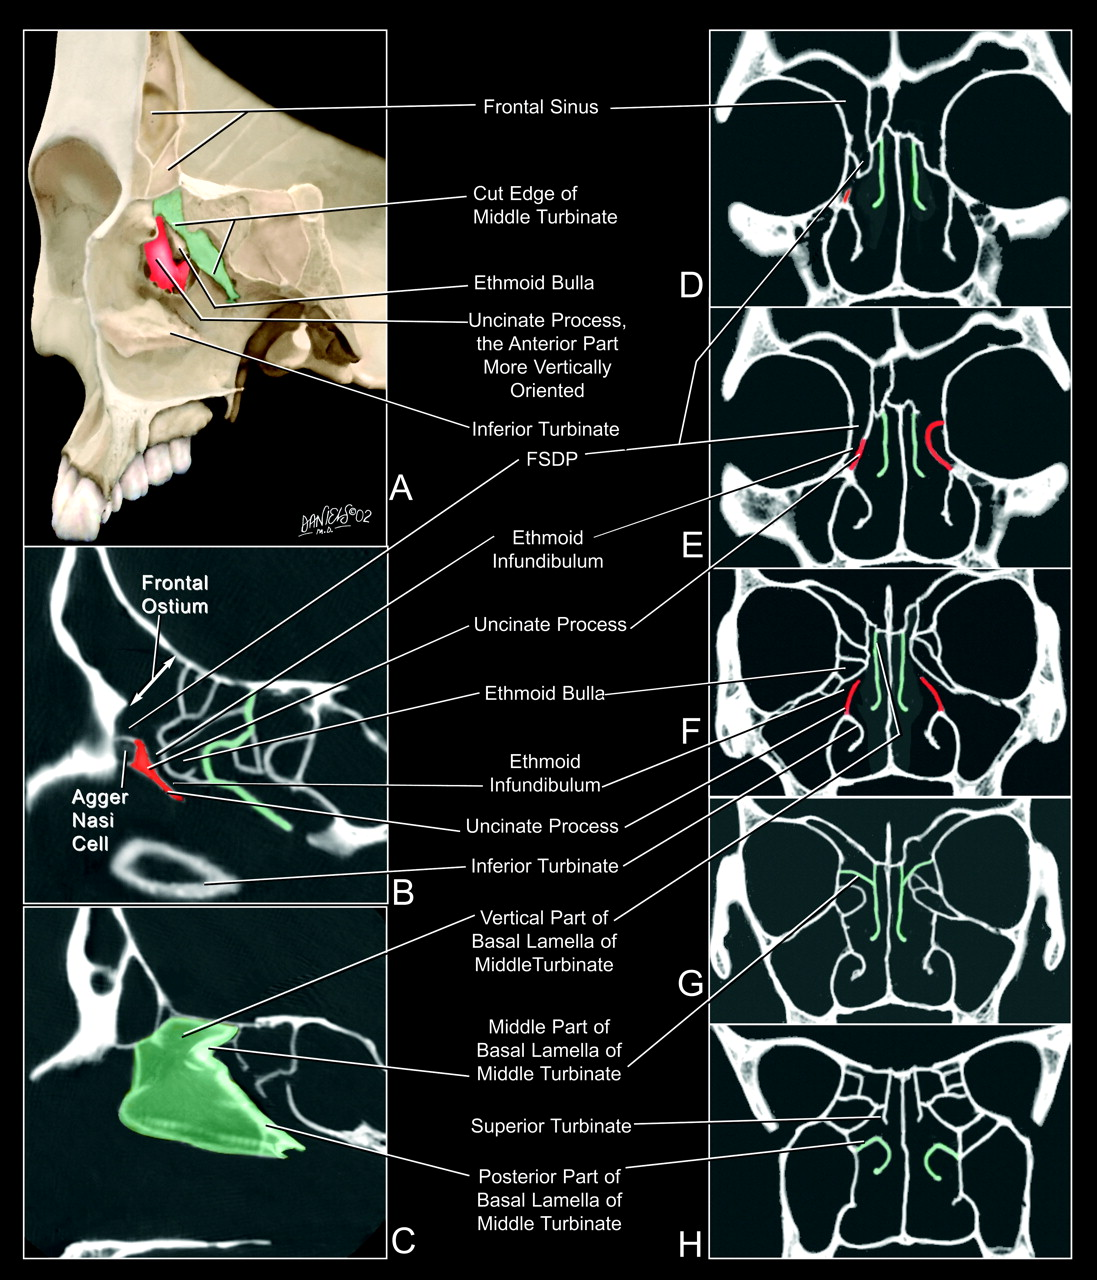 The Frontal Sinus Drainage Pathway and Related Structures ...  Ethmoid